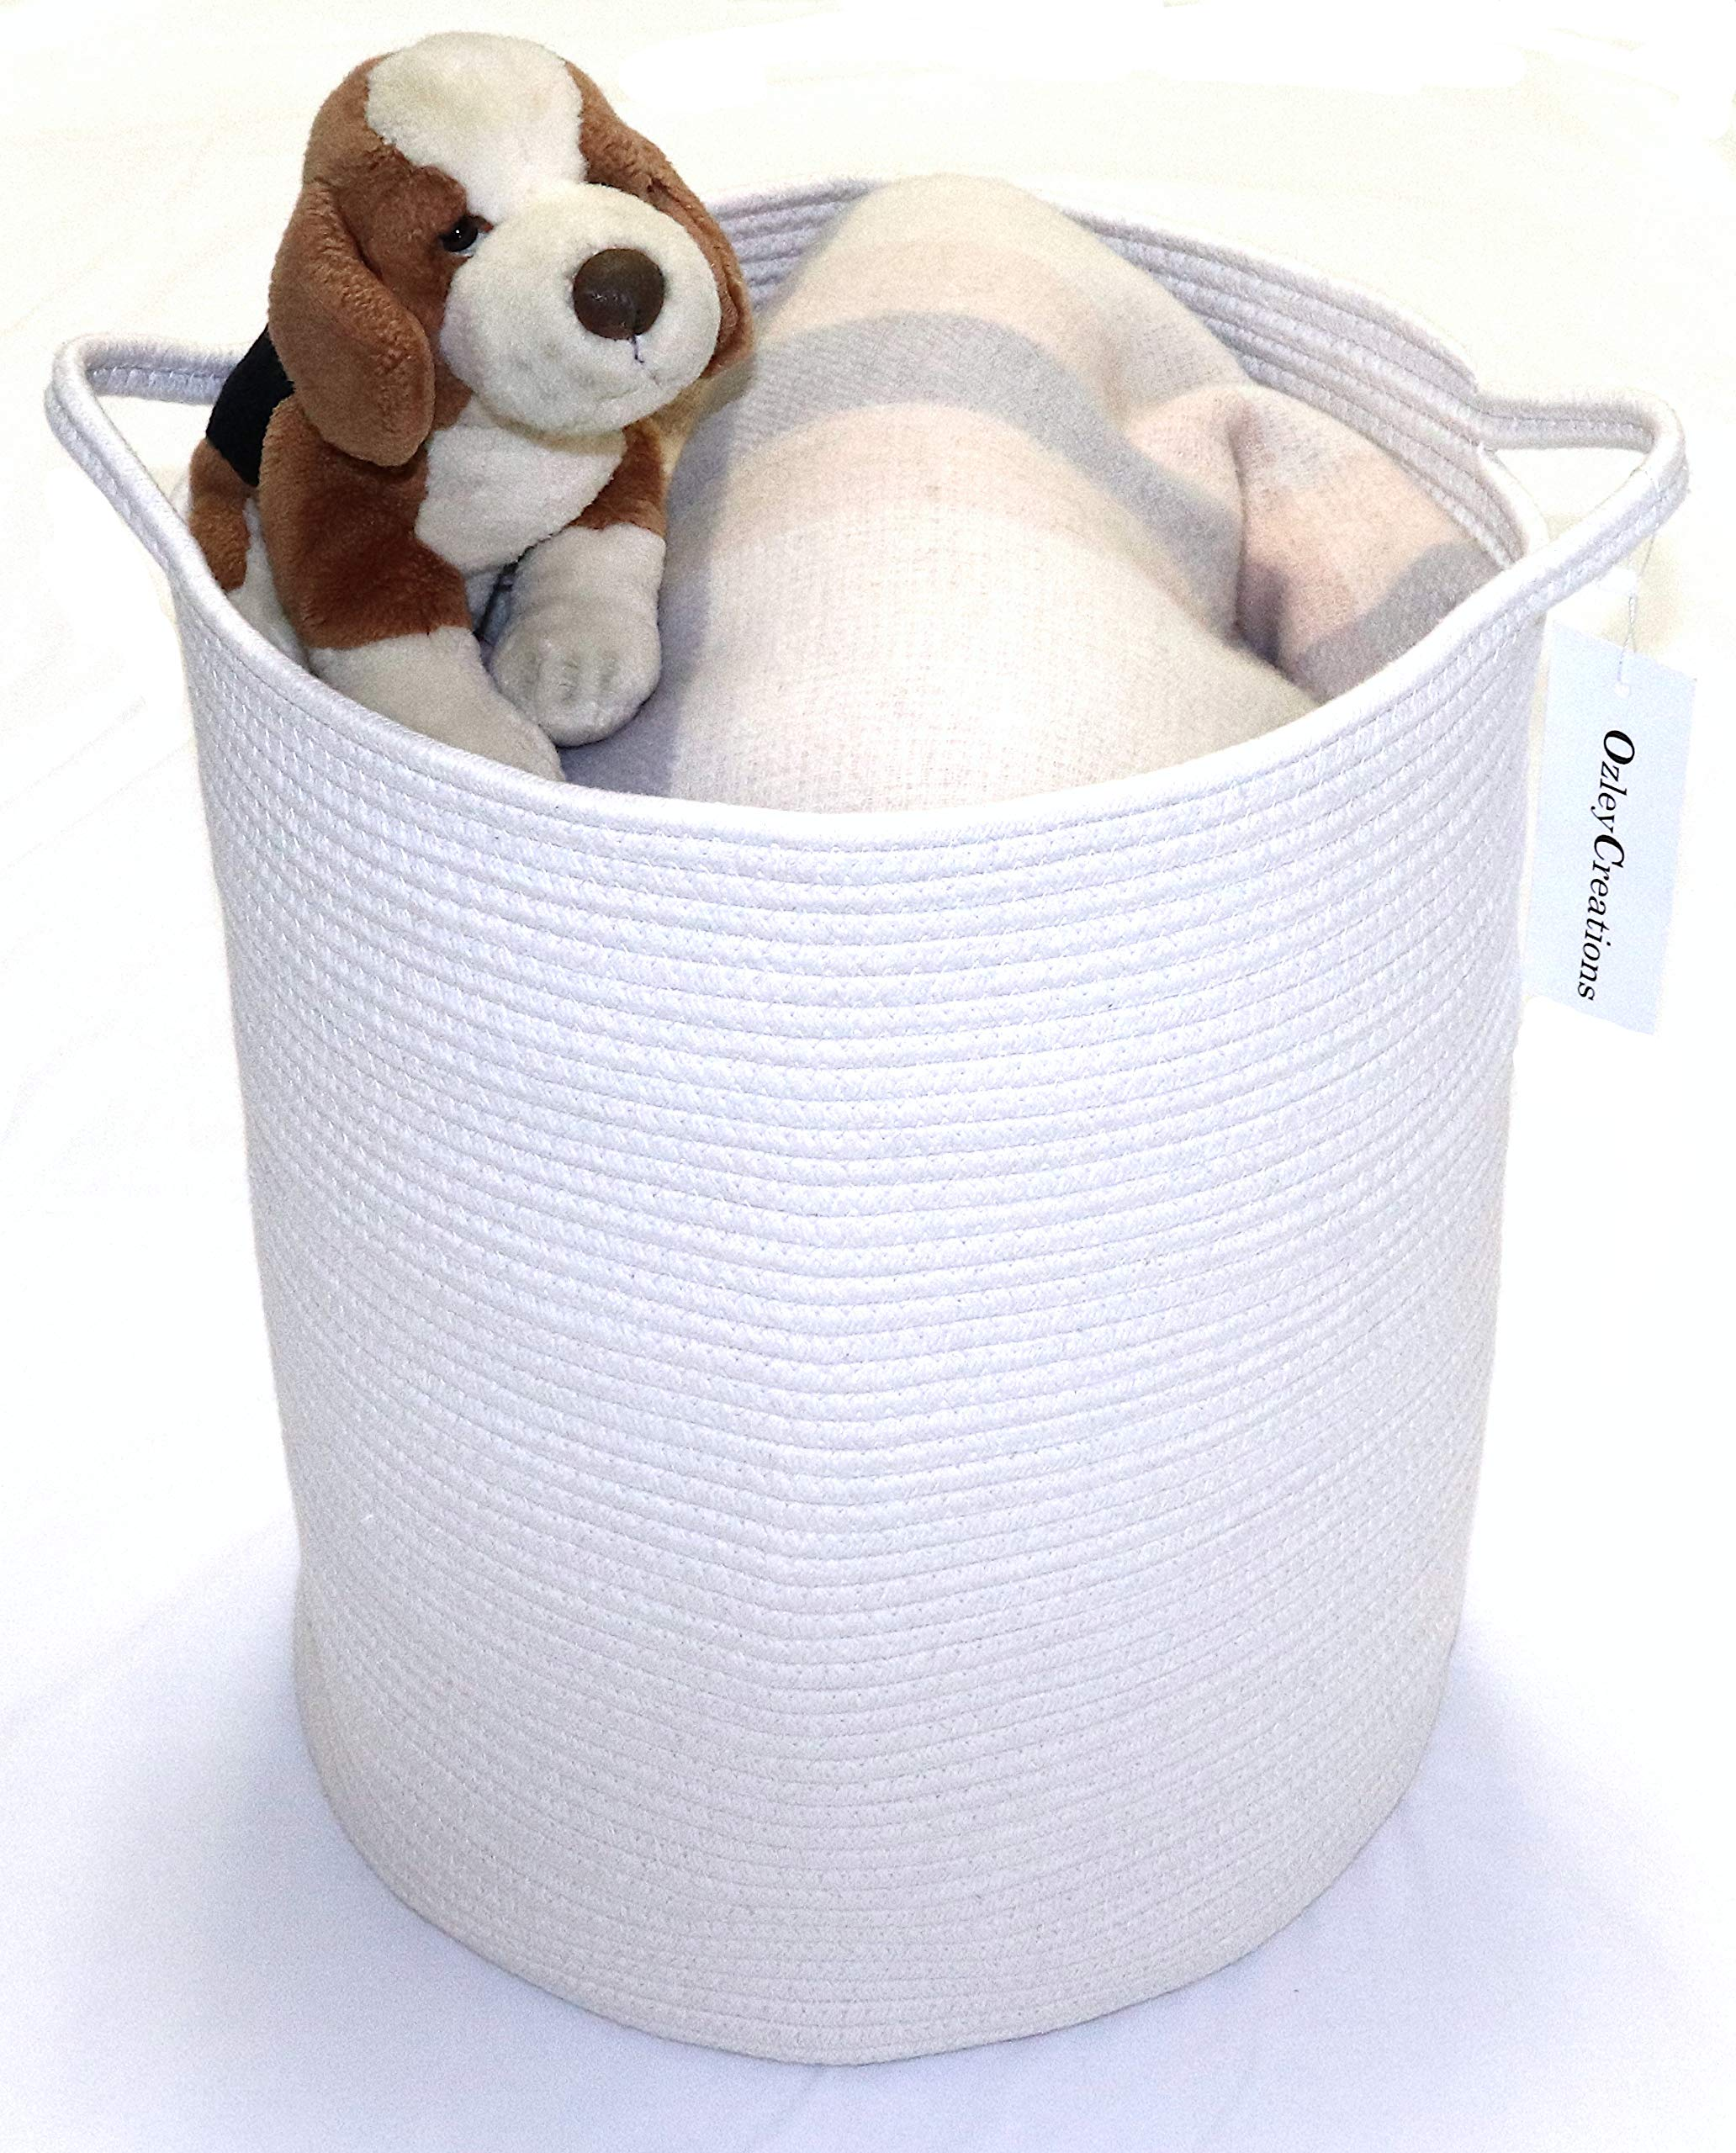 OZLEY Large Cotton Rope Basket | 18''x16'' | Woven Storage Basket for Baby, Kids, Toys, Living Room, Blankets, Laundry | White Nursery Hamper with Handles